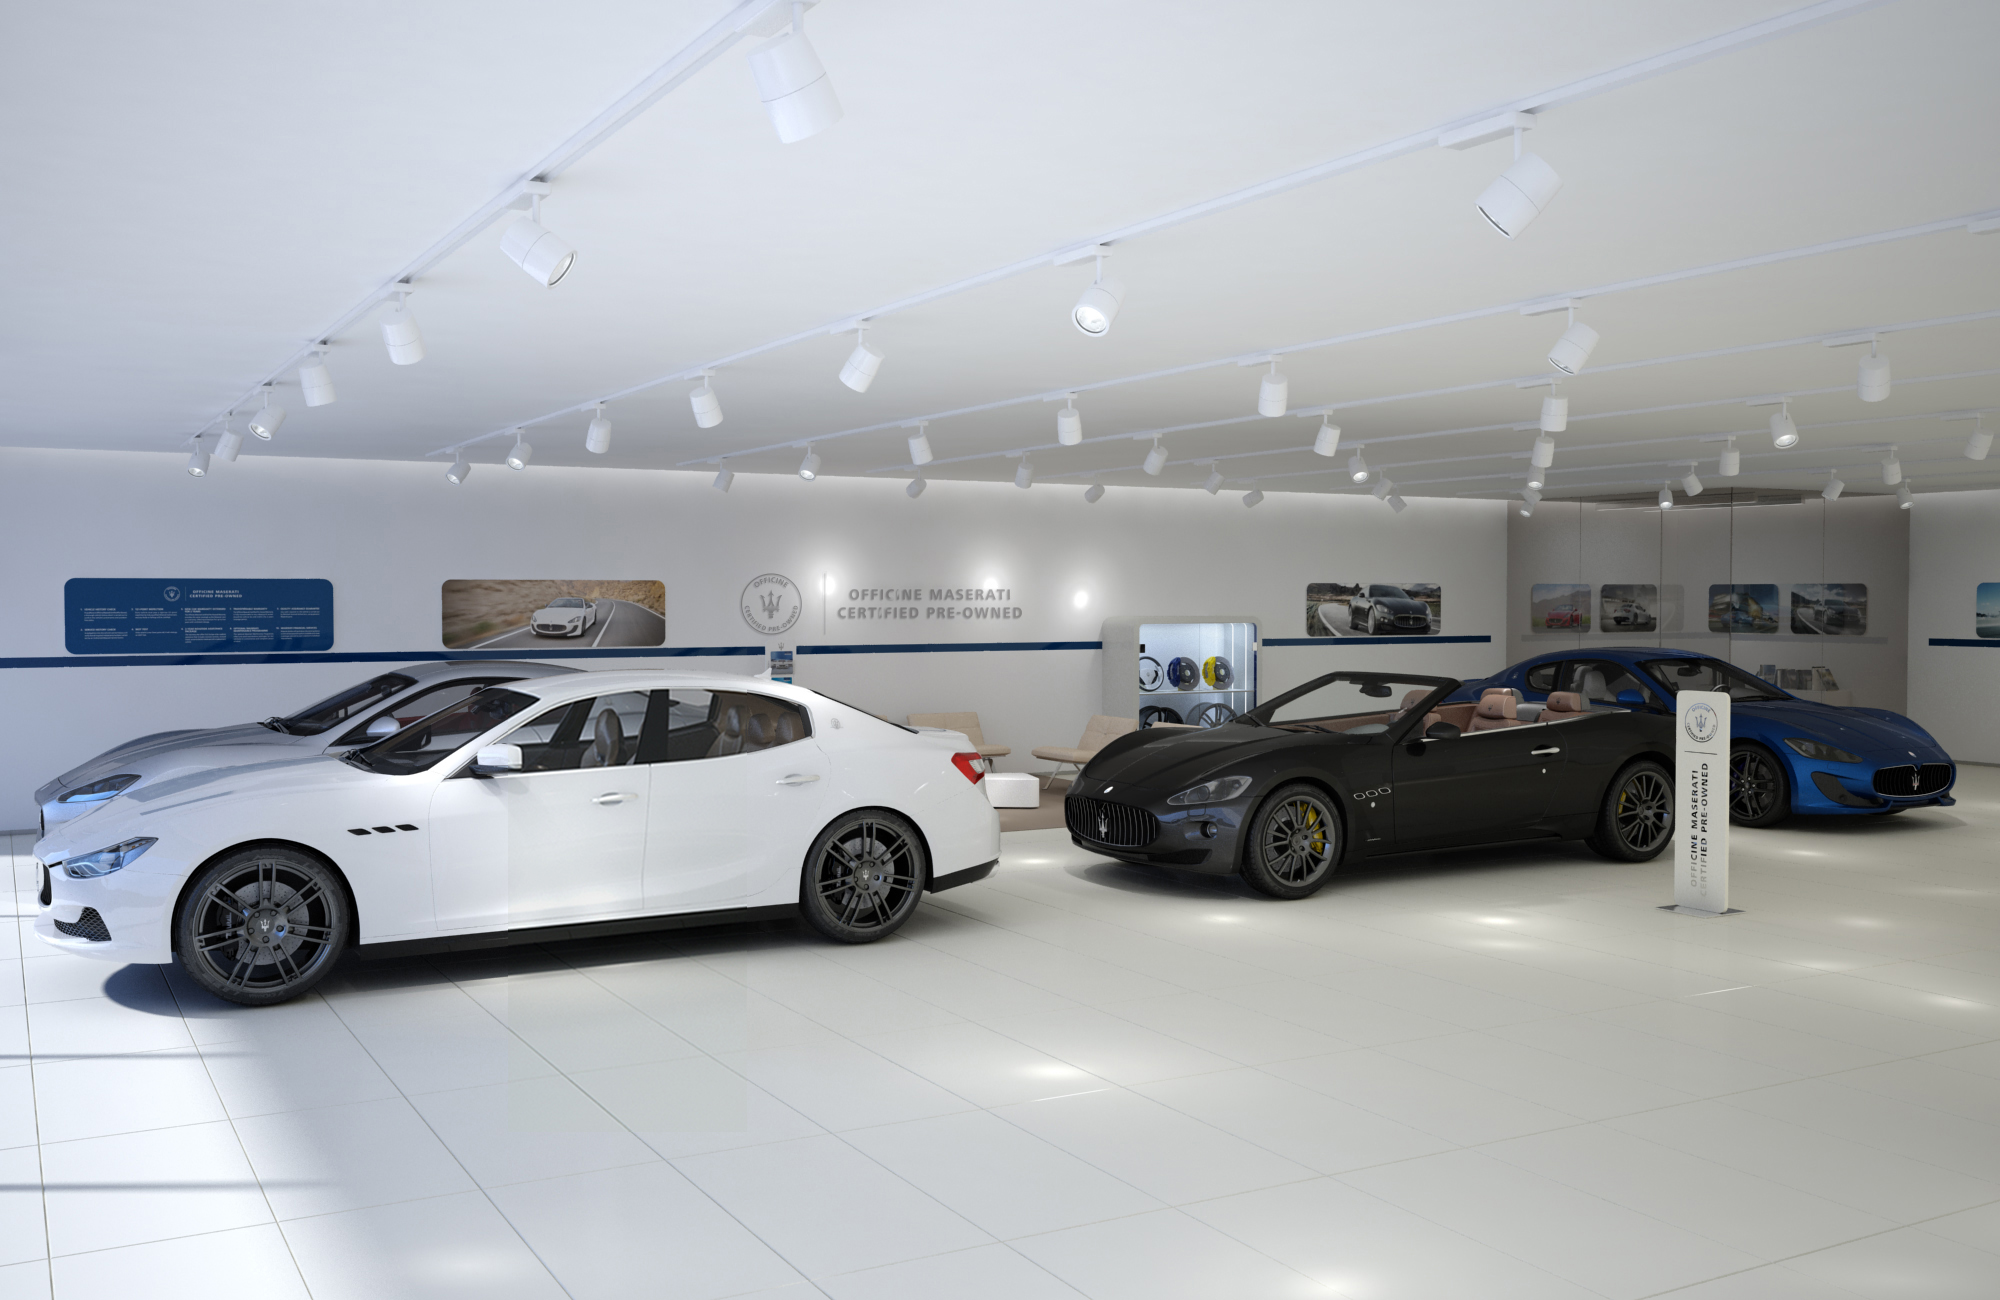 Officine Maserati Certified Pre-Owned